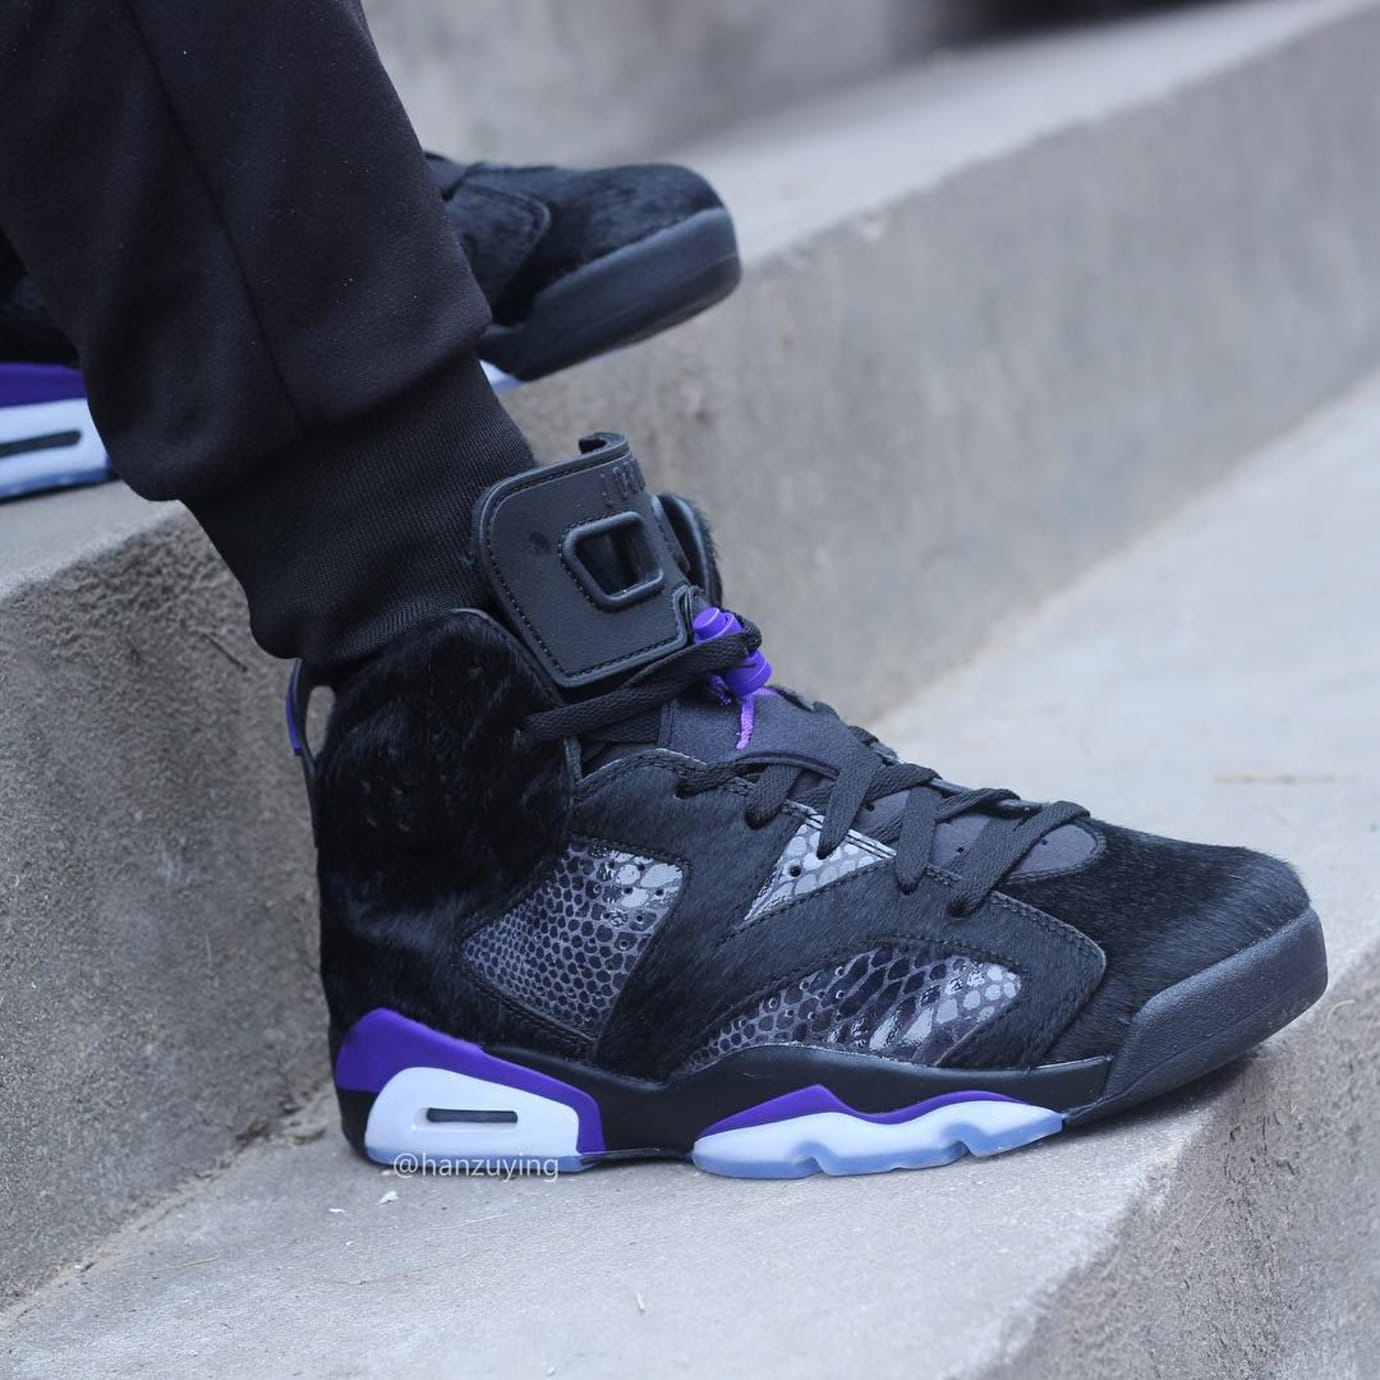 size 40 41156 04c34 Image via hanzuying · Air Jordan 6 VI Cow Fur Snakeskin Black Purple  Release Date AR2257-005 On-